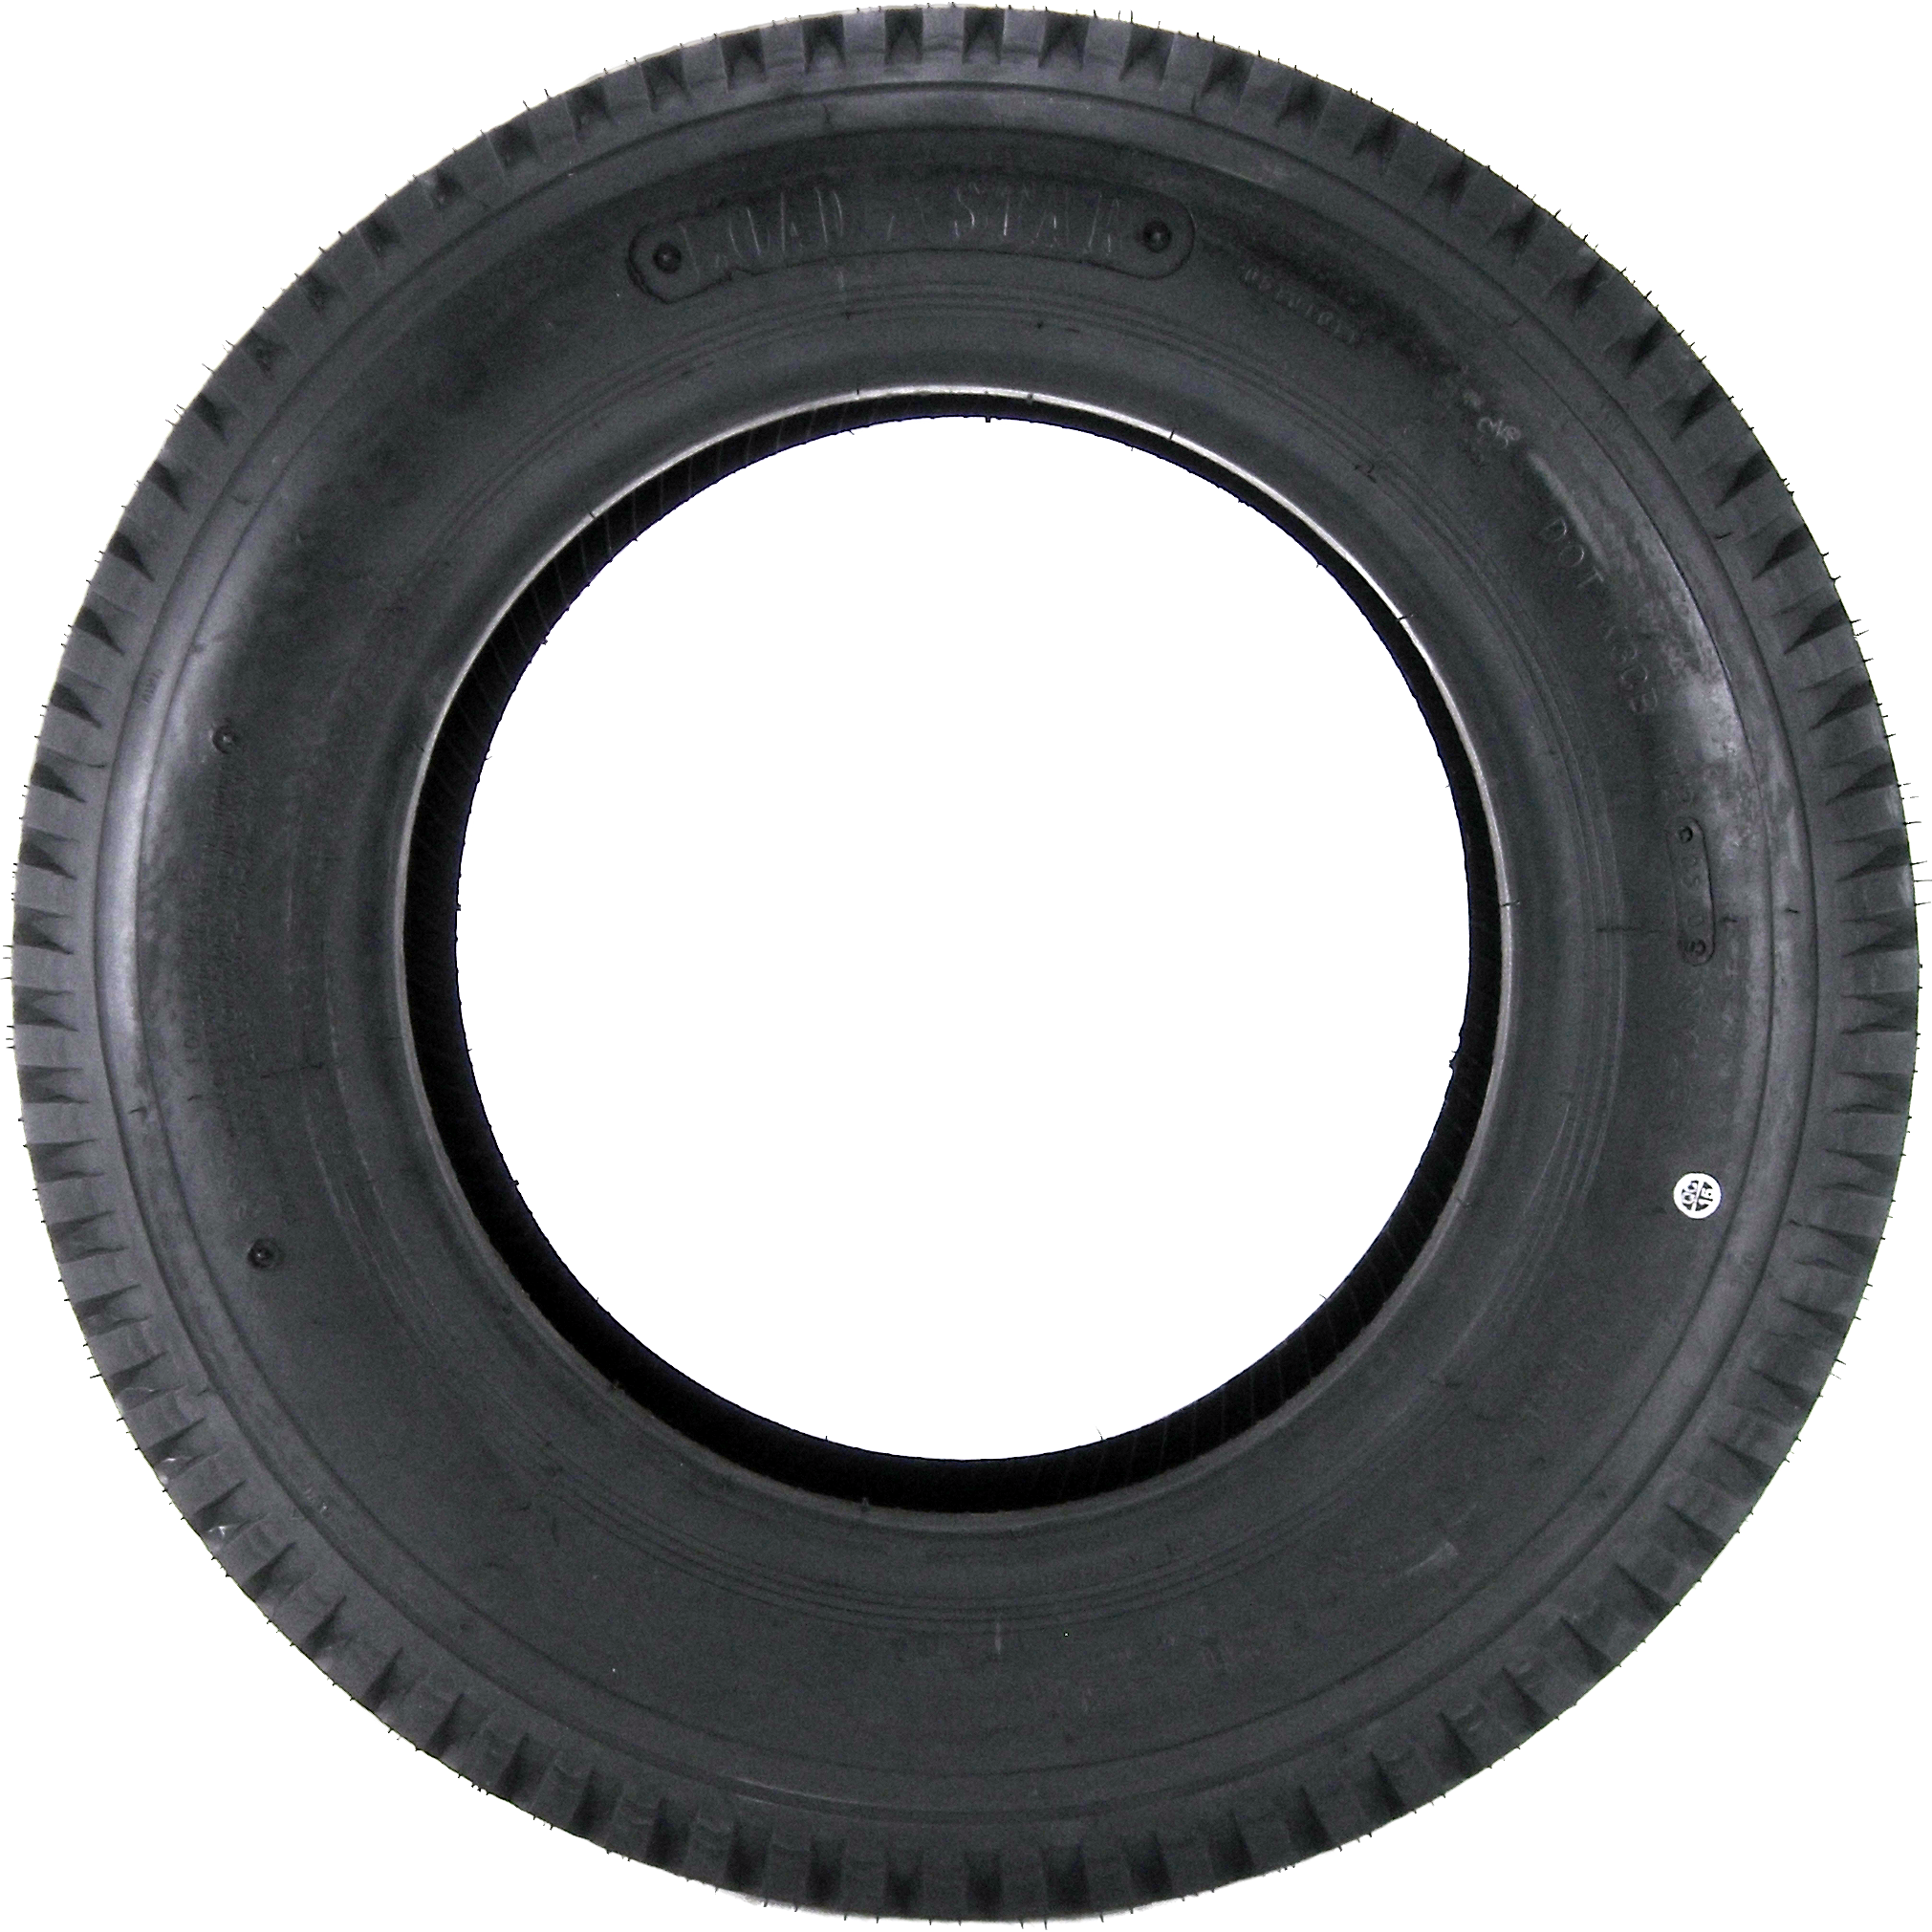 Tires Png Trailer tires